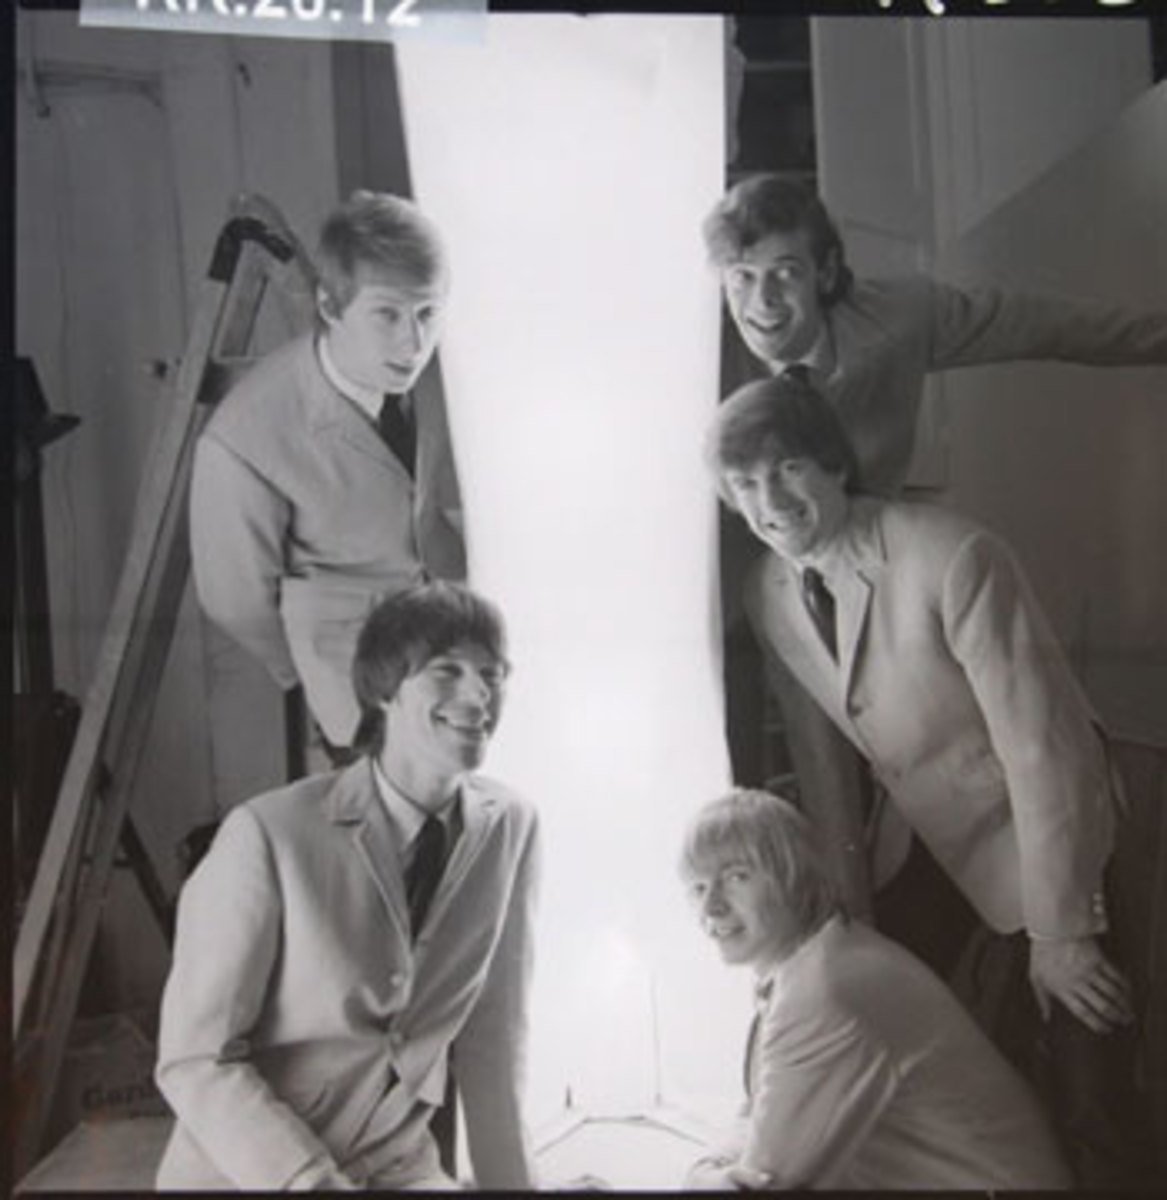 A 1965 photograph of the Yardbirds by Philip Kamin. Photo courtesy of Backstage Auctions